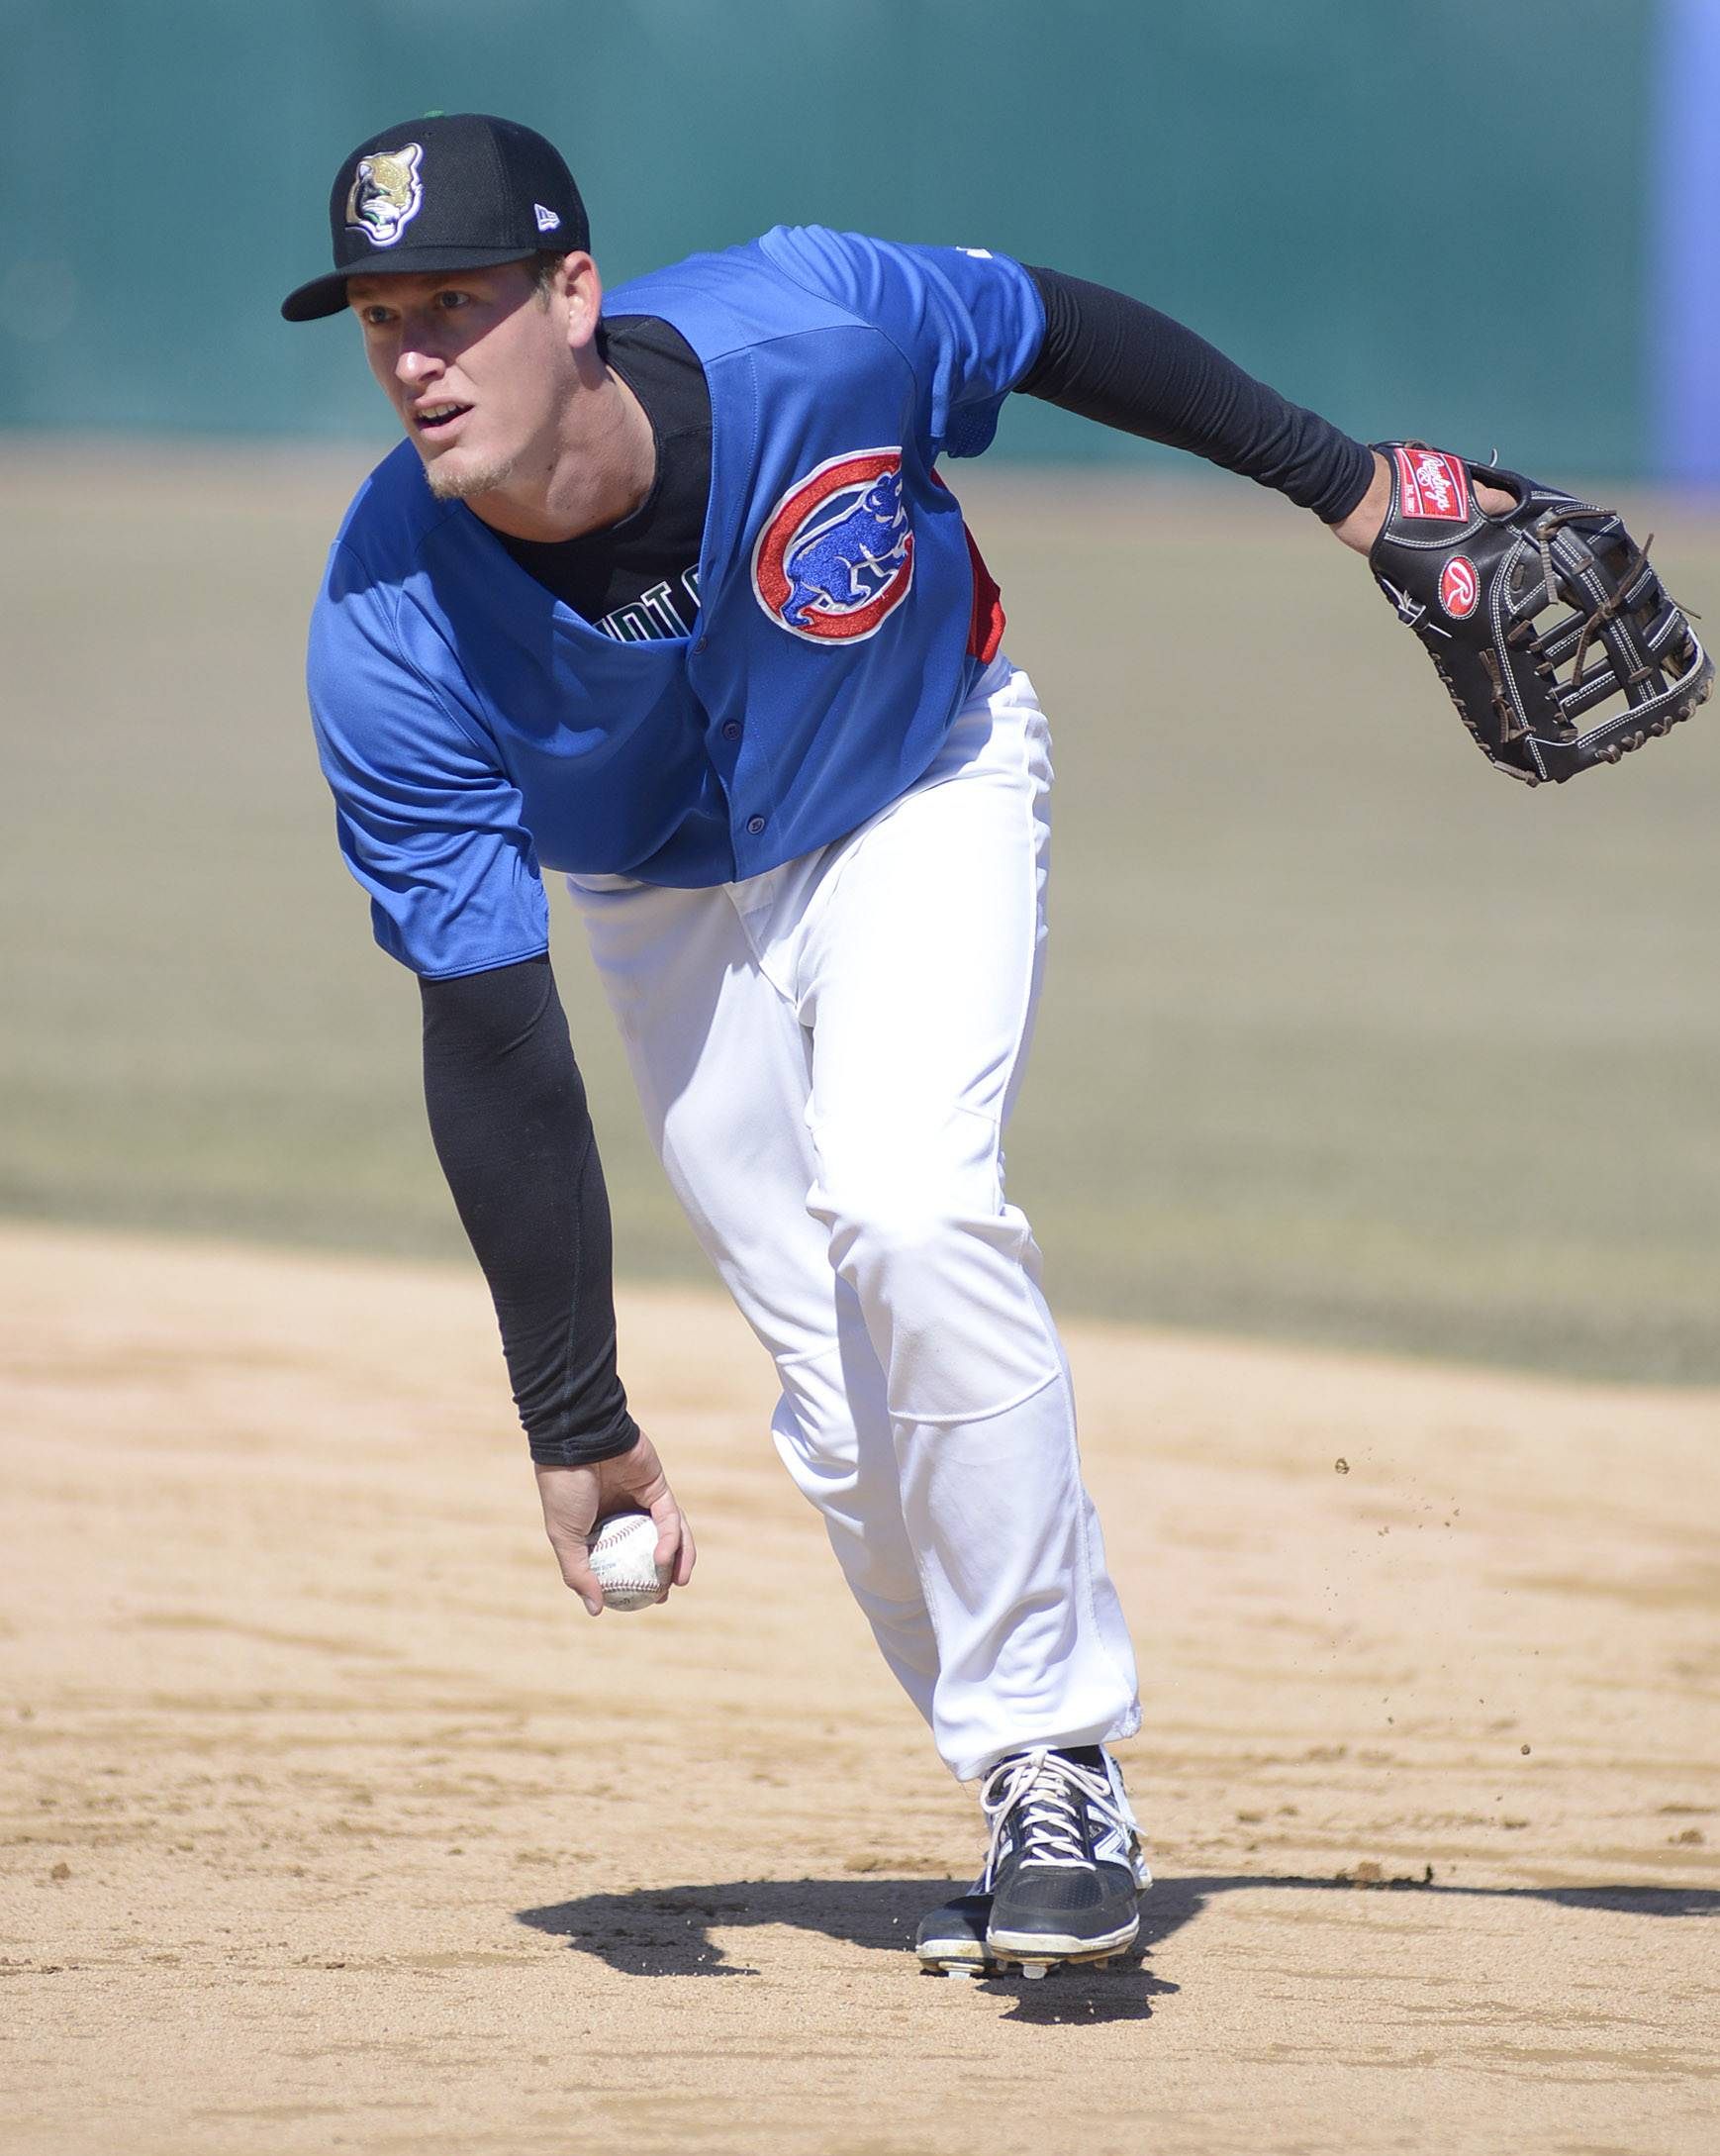 Kane County Cougars infielder Jacob Rogers takes some infield practice at Fifth Third Ballpark in Geneva on Tuesday.